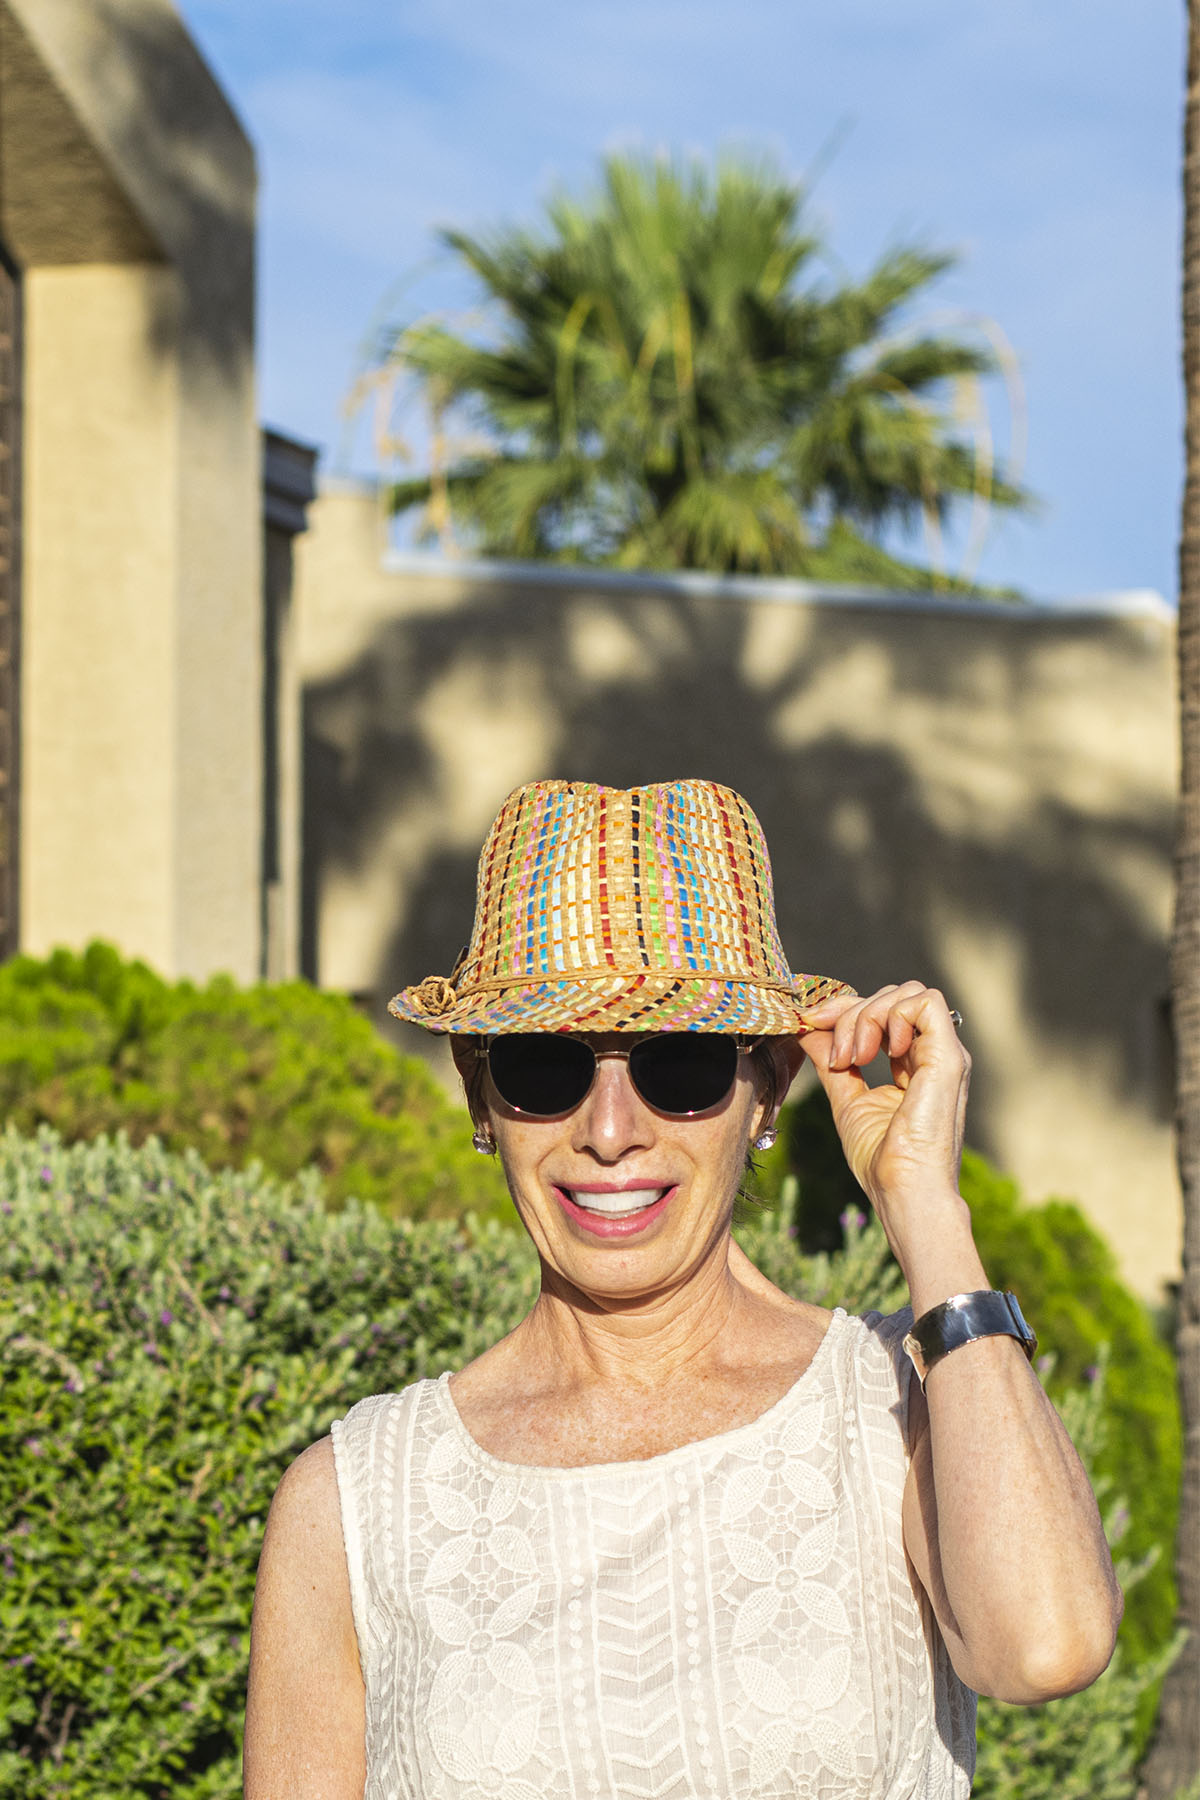 5 Style Reasons to Embrace Hats-Yes You Do Look Good in Them